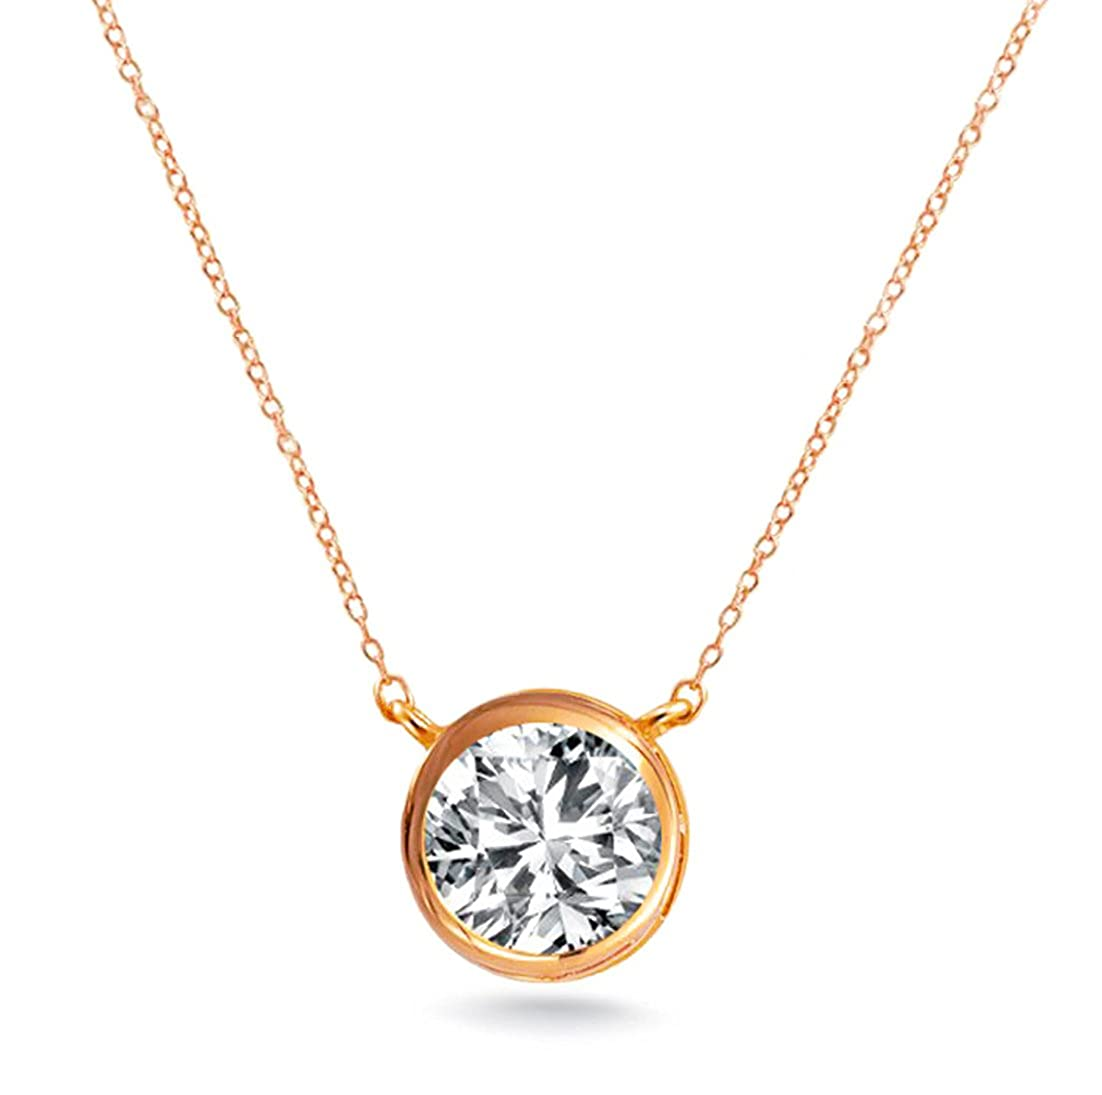 dae9eac75 Amazon.com: .925 Sterling Silver Rose Gold Tone Finish Solitaire Pendant  Necklace Round 7mm Bezel 16